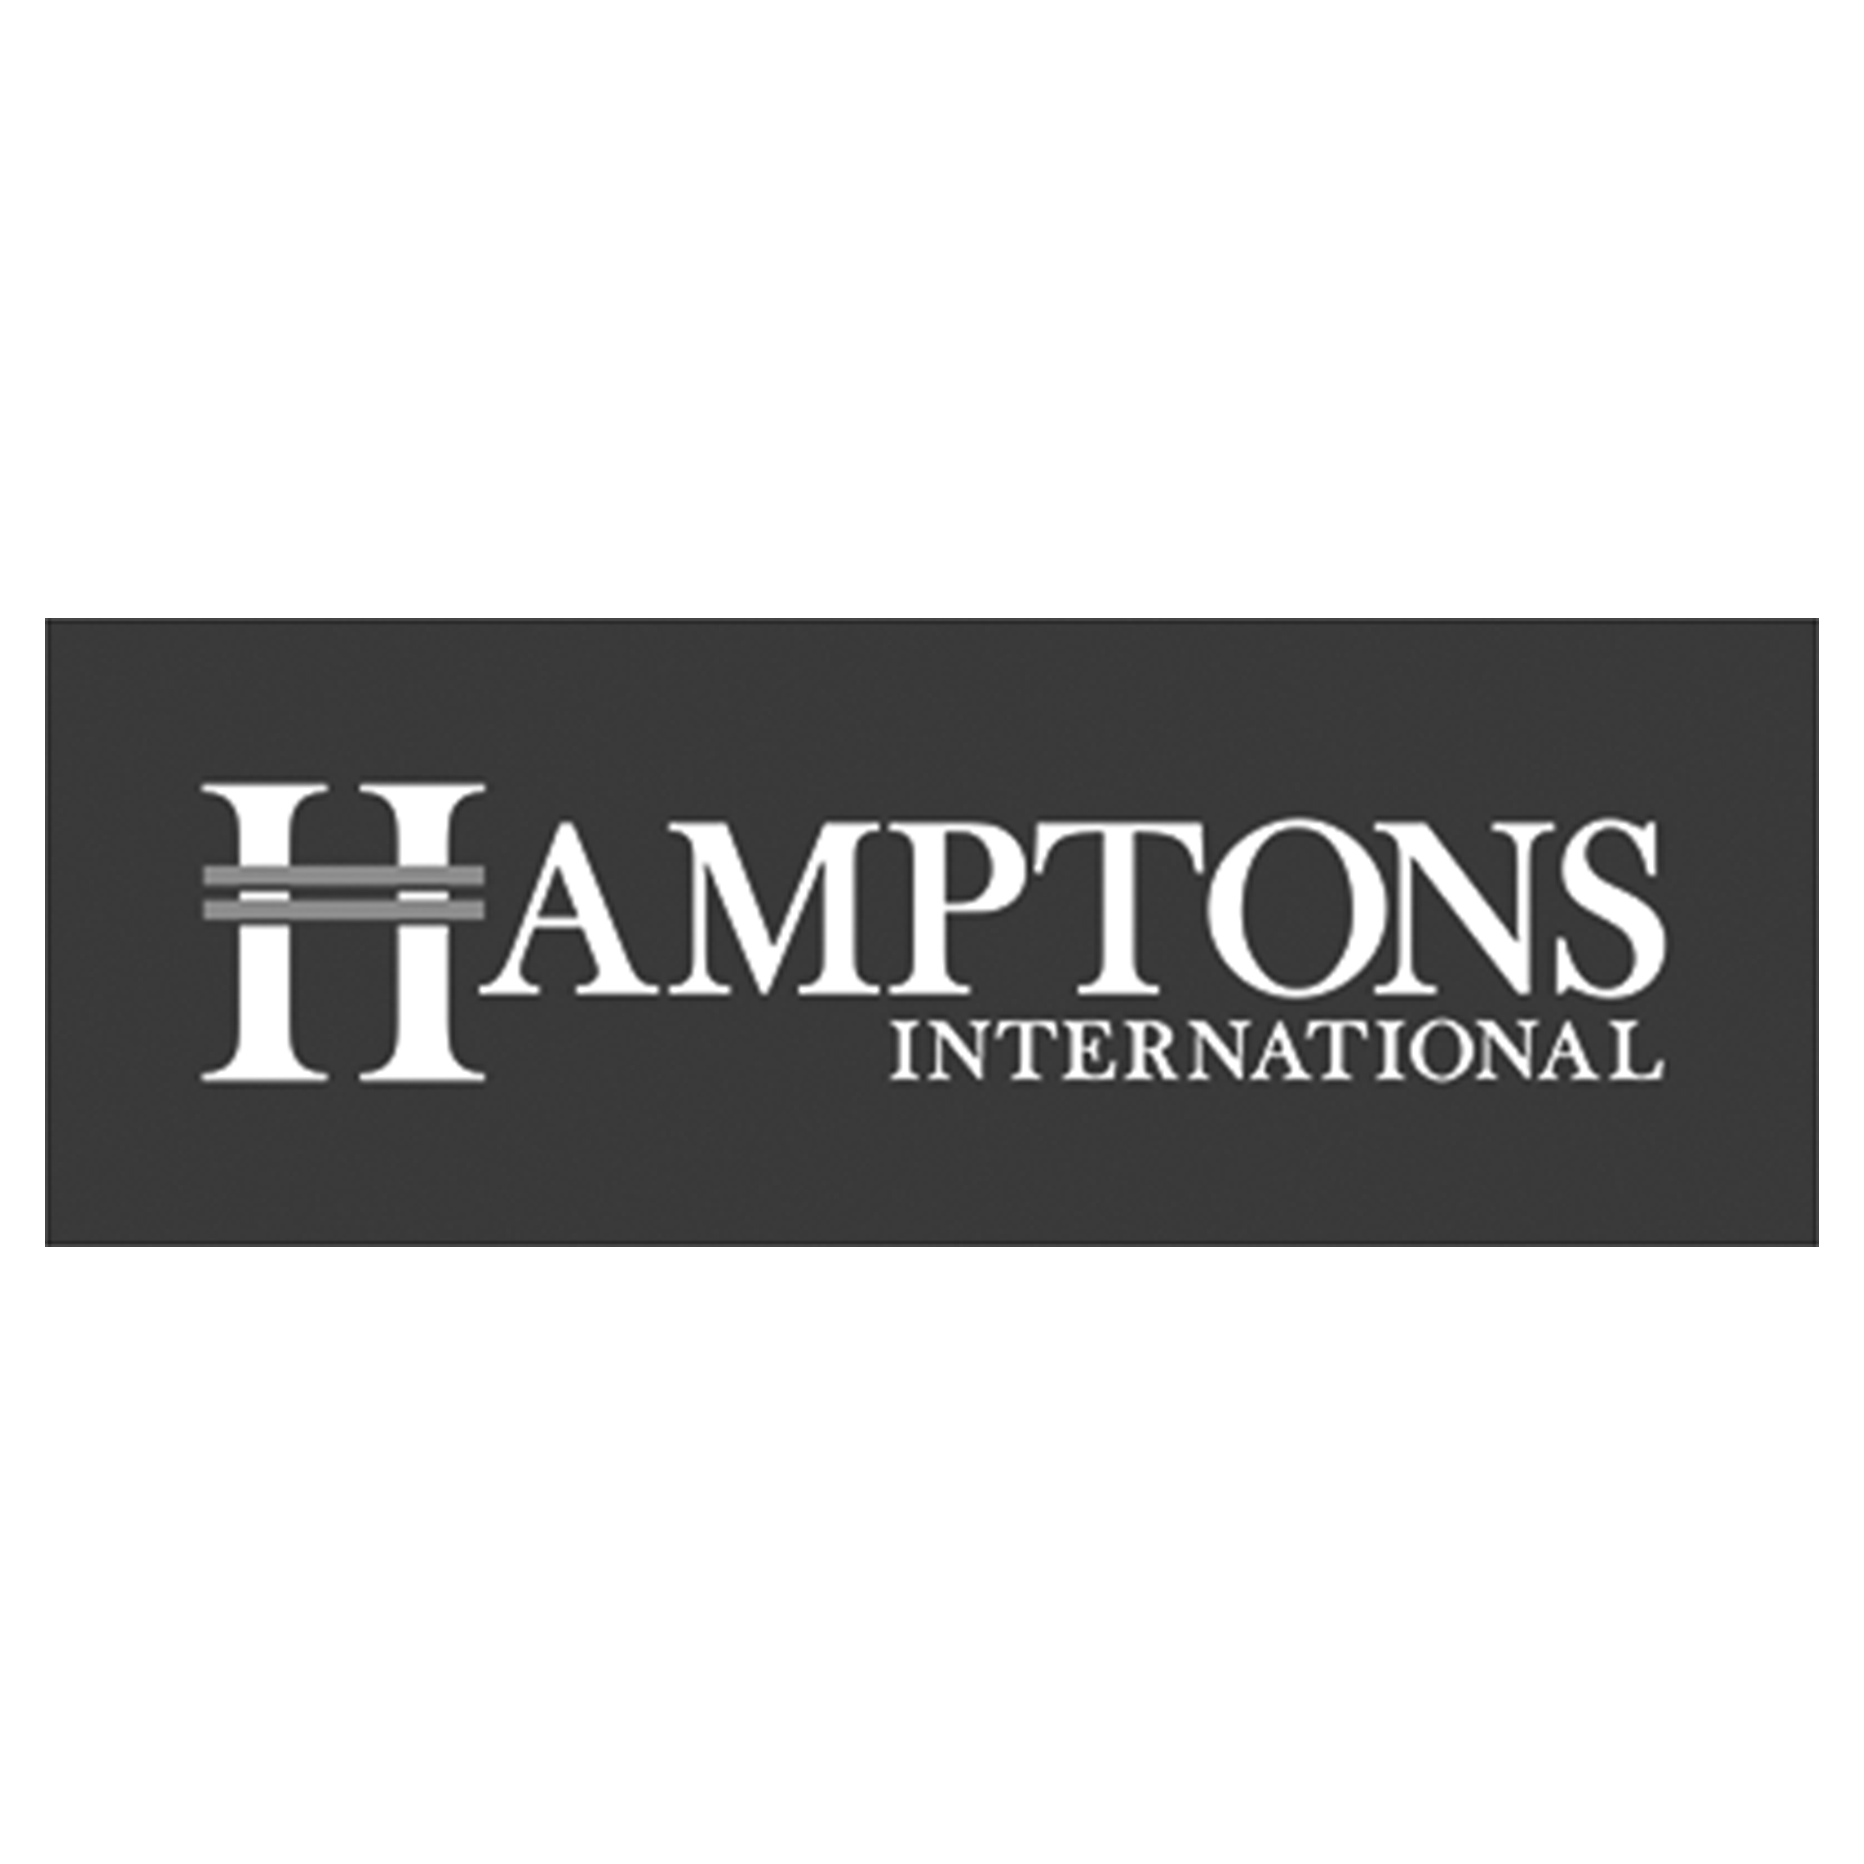 Hamptons - gs.png